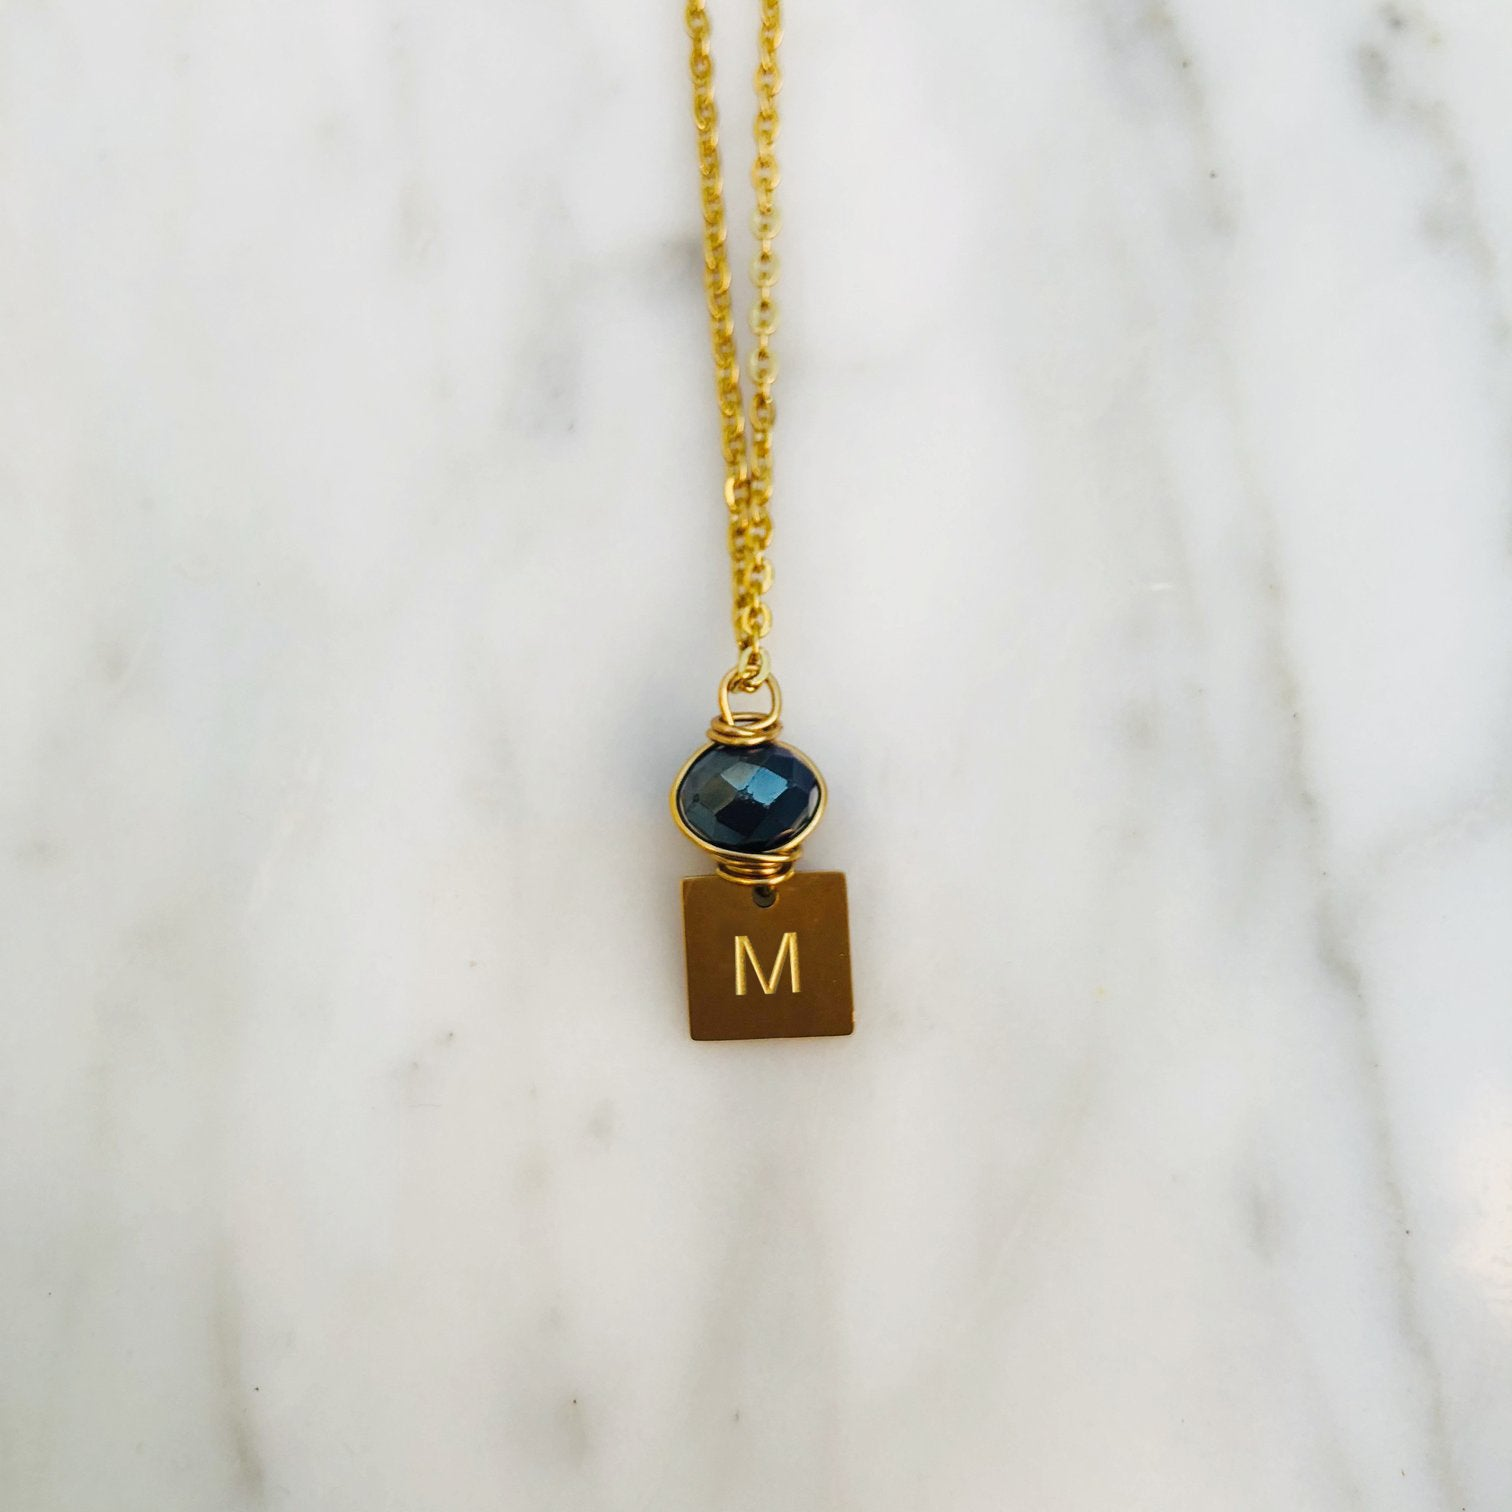 'M' initial chain necklace